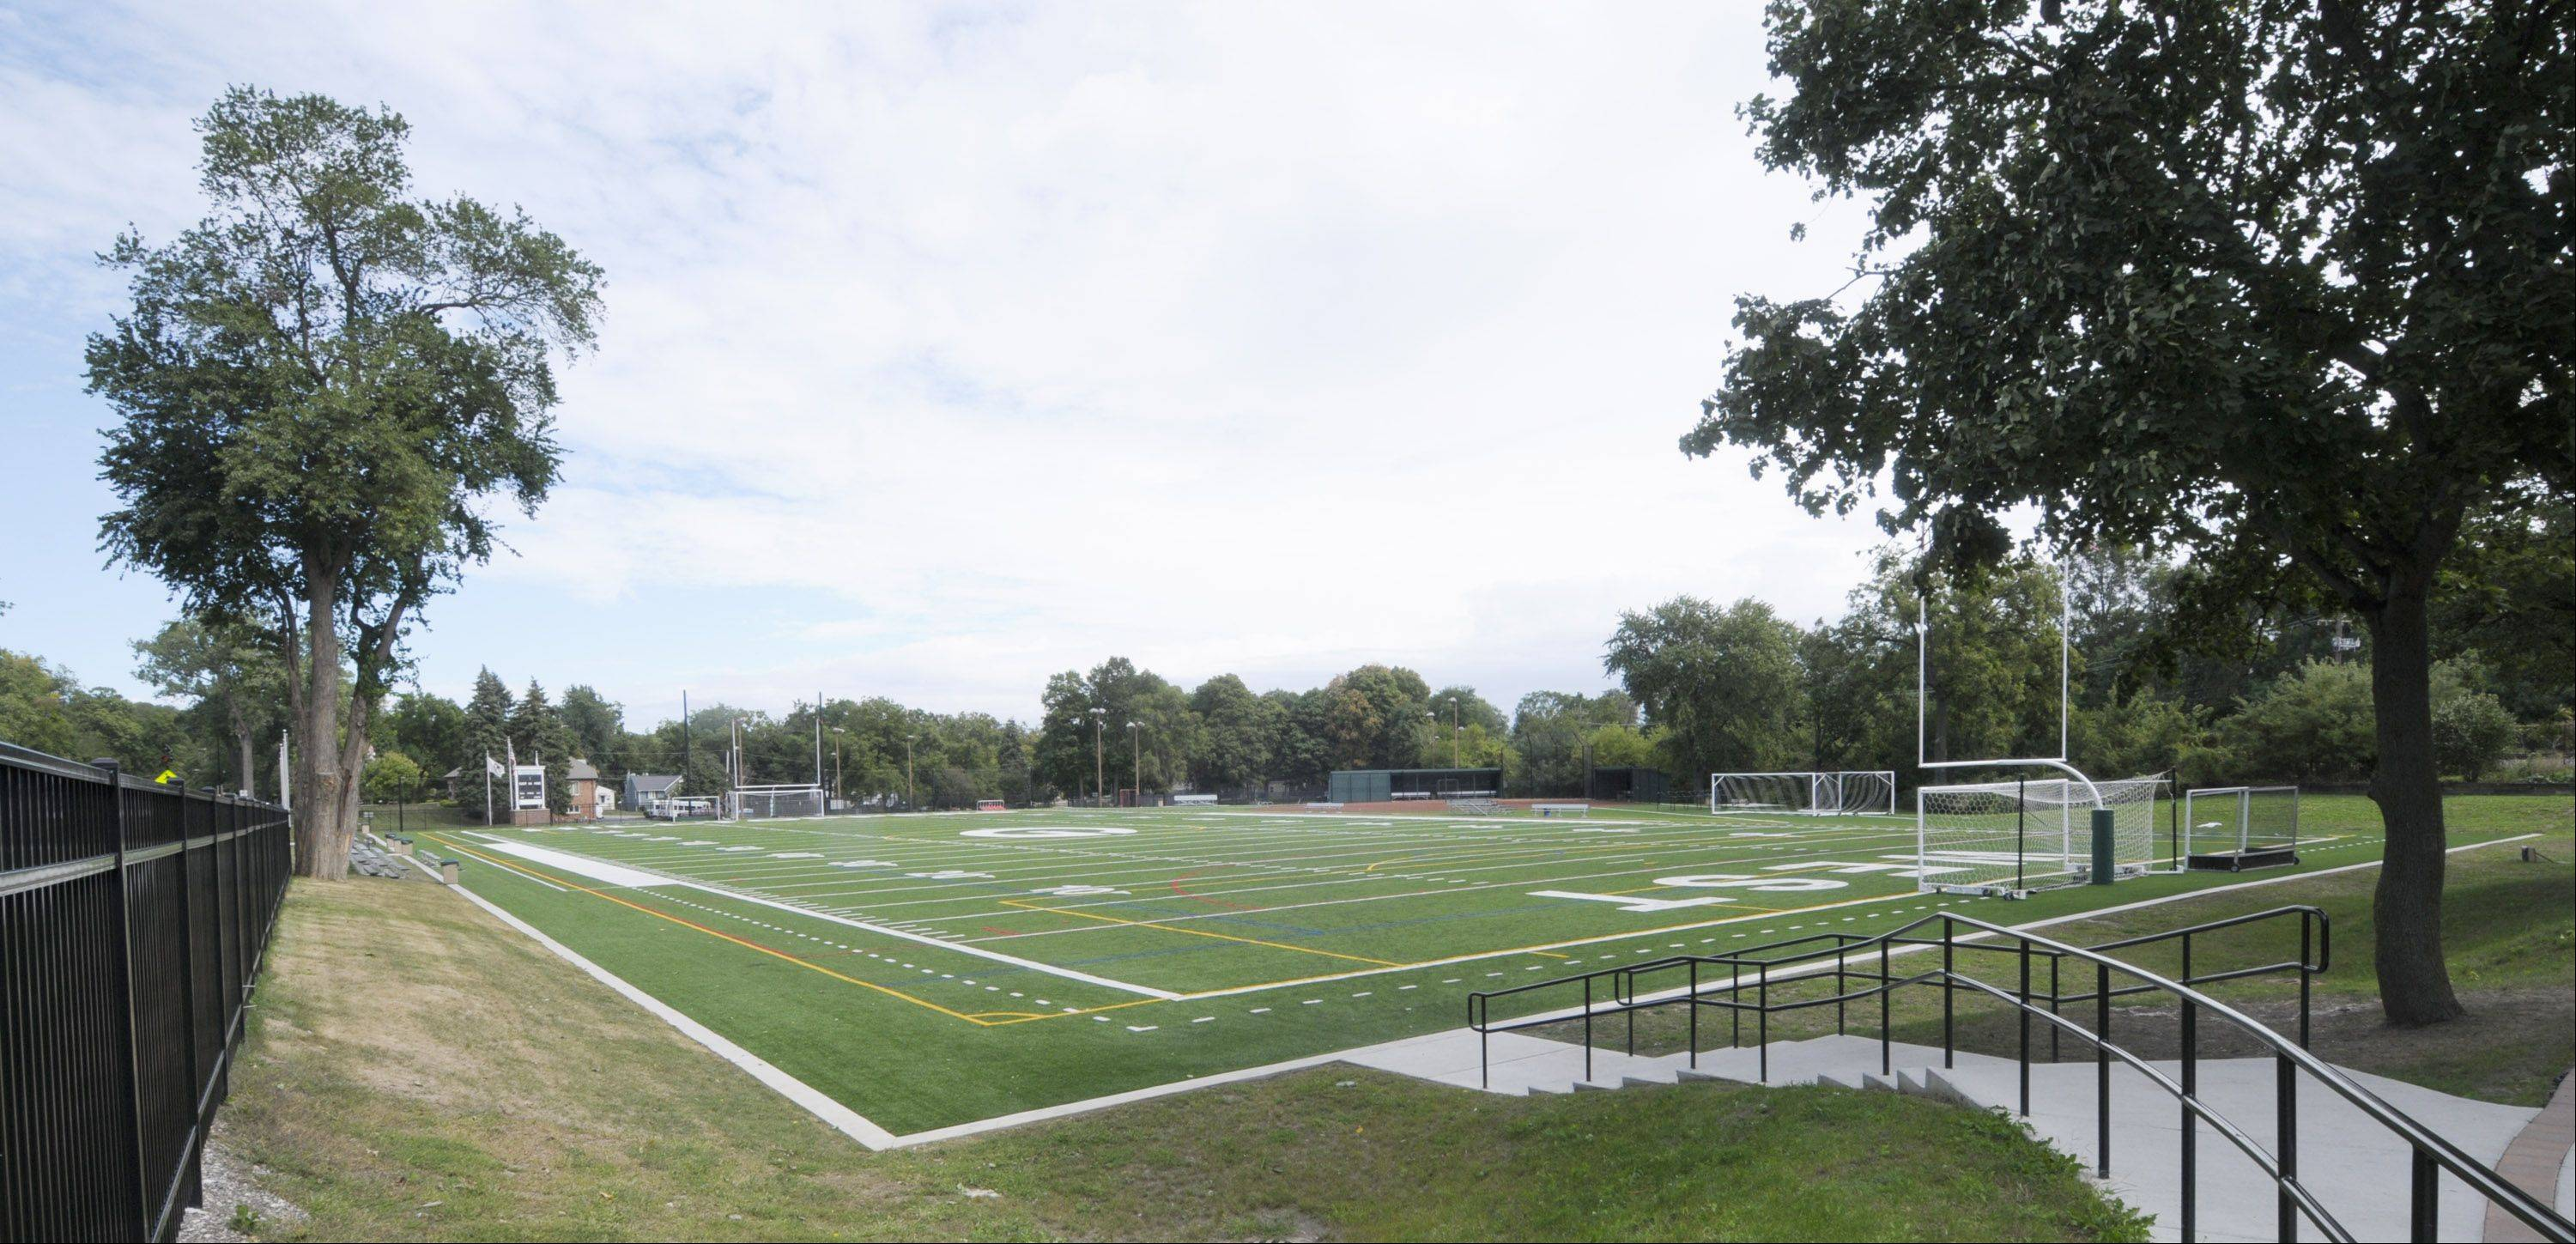 Roughly 85 percent of the funds have been raised for a field lighting project at Memorial Field, across the street from Glenbard West High School in Glen Ellyn.